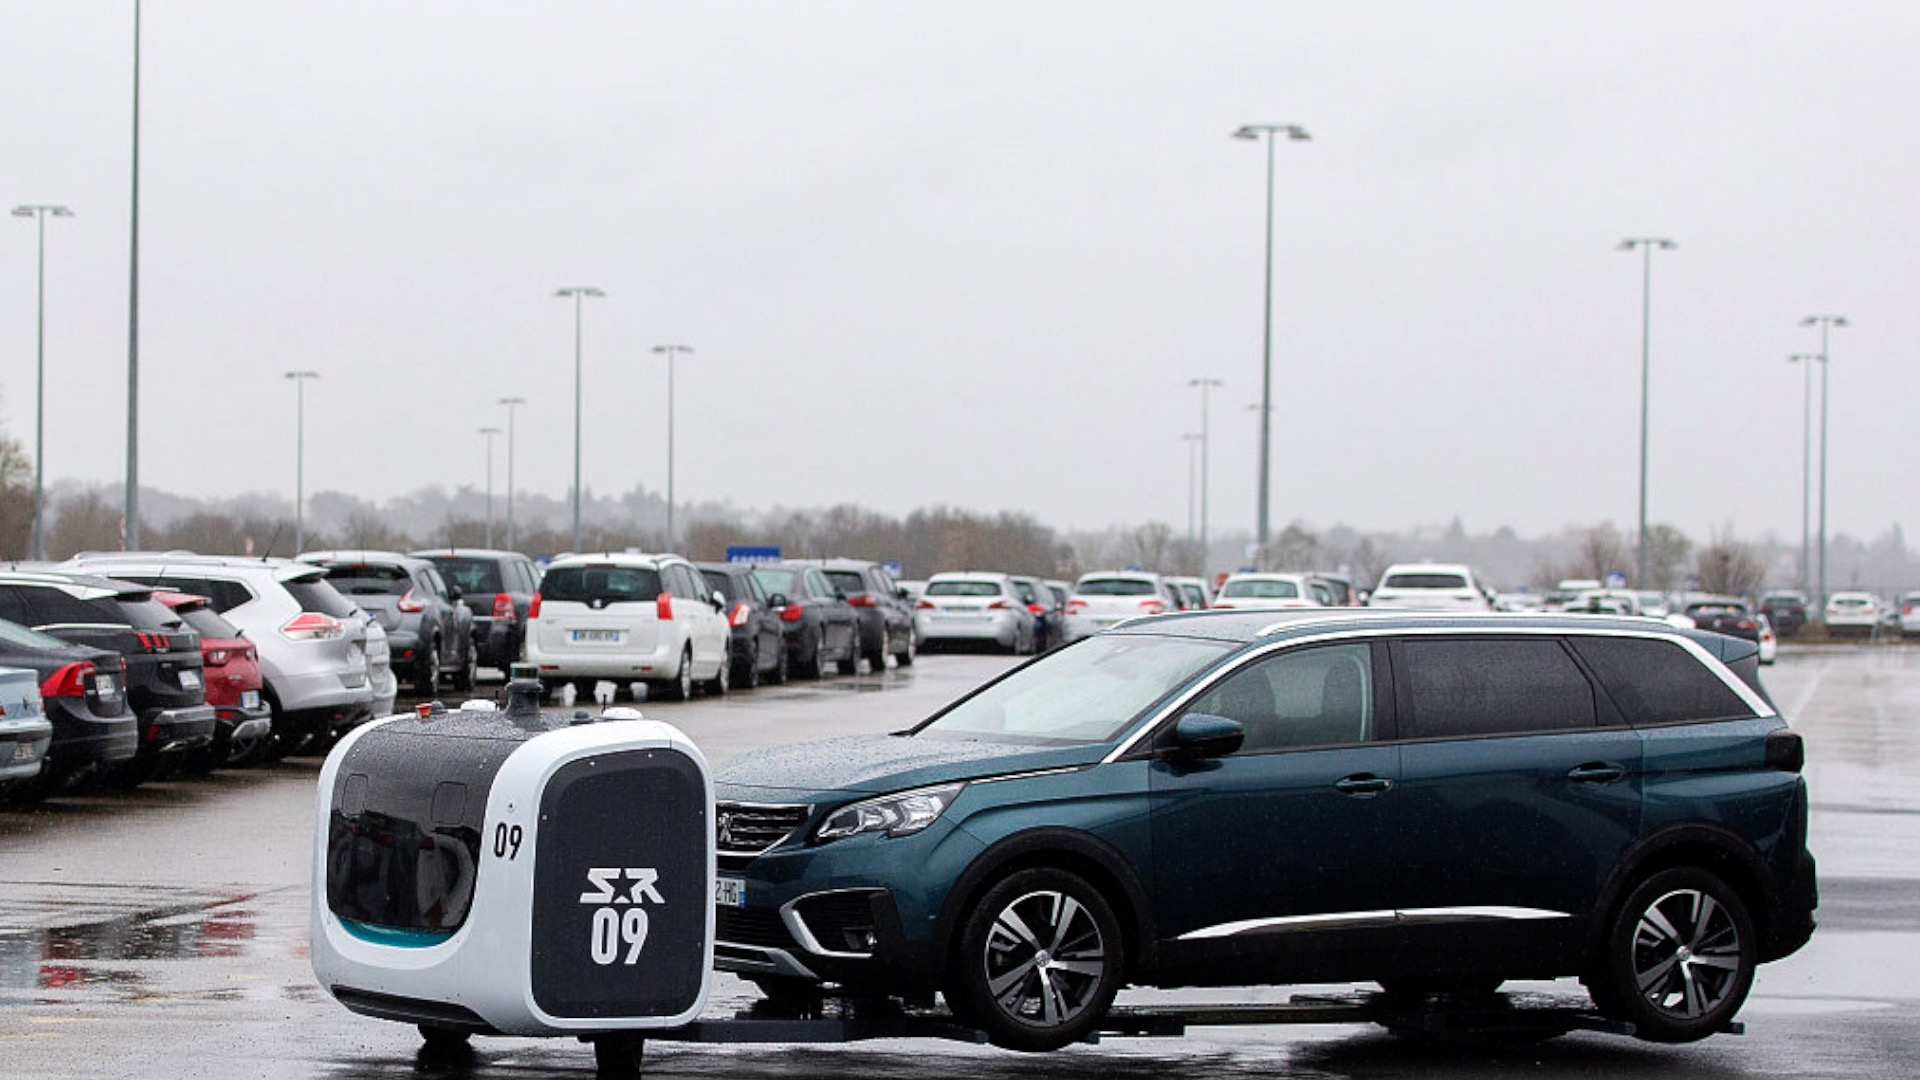 Parking robots help customers optimize space in French airport